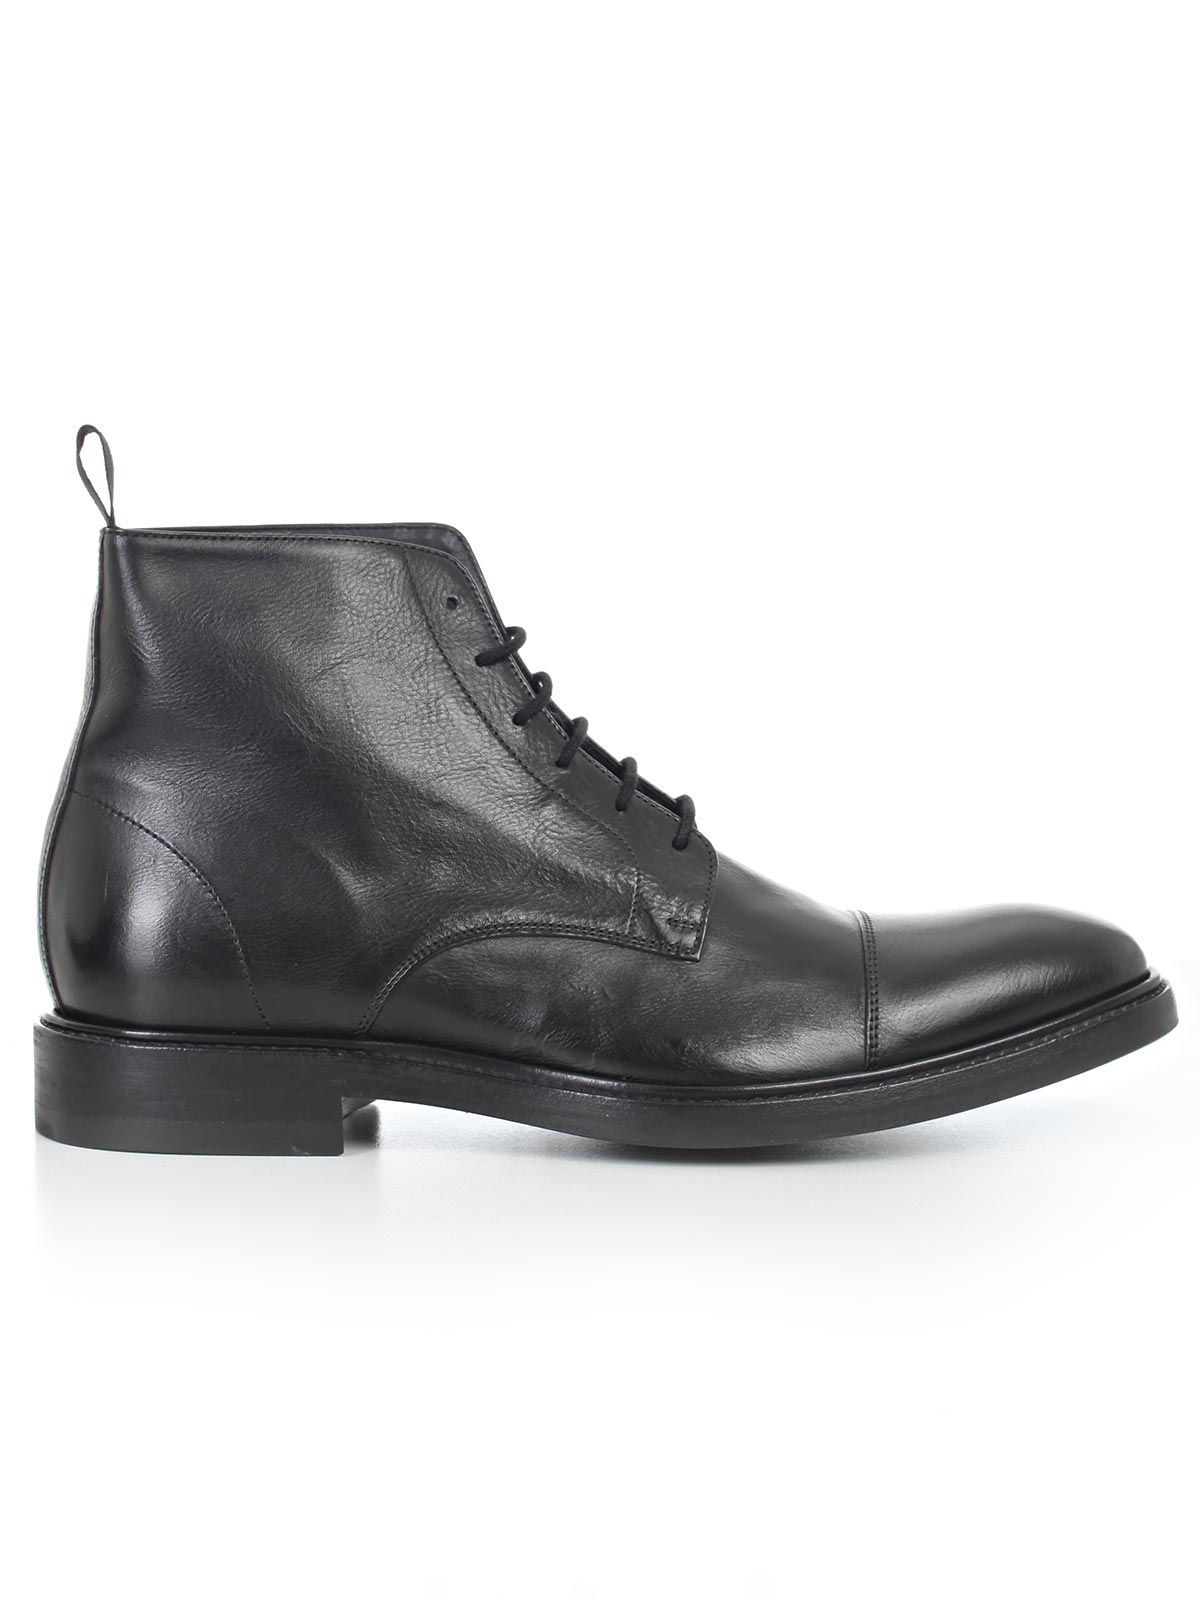 Picture of PAUL SMITH Boots